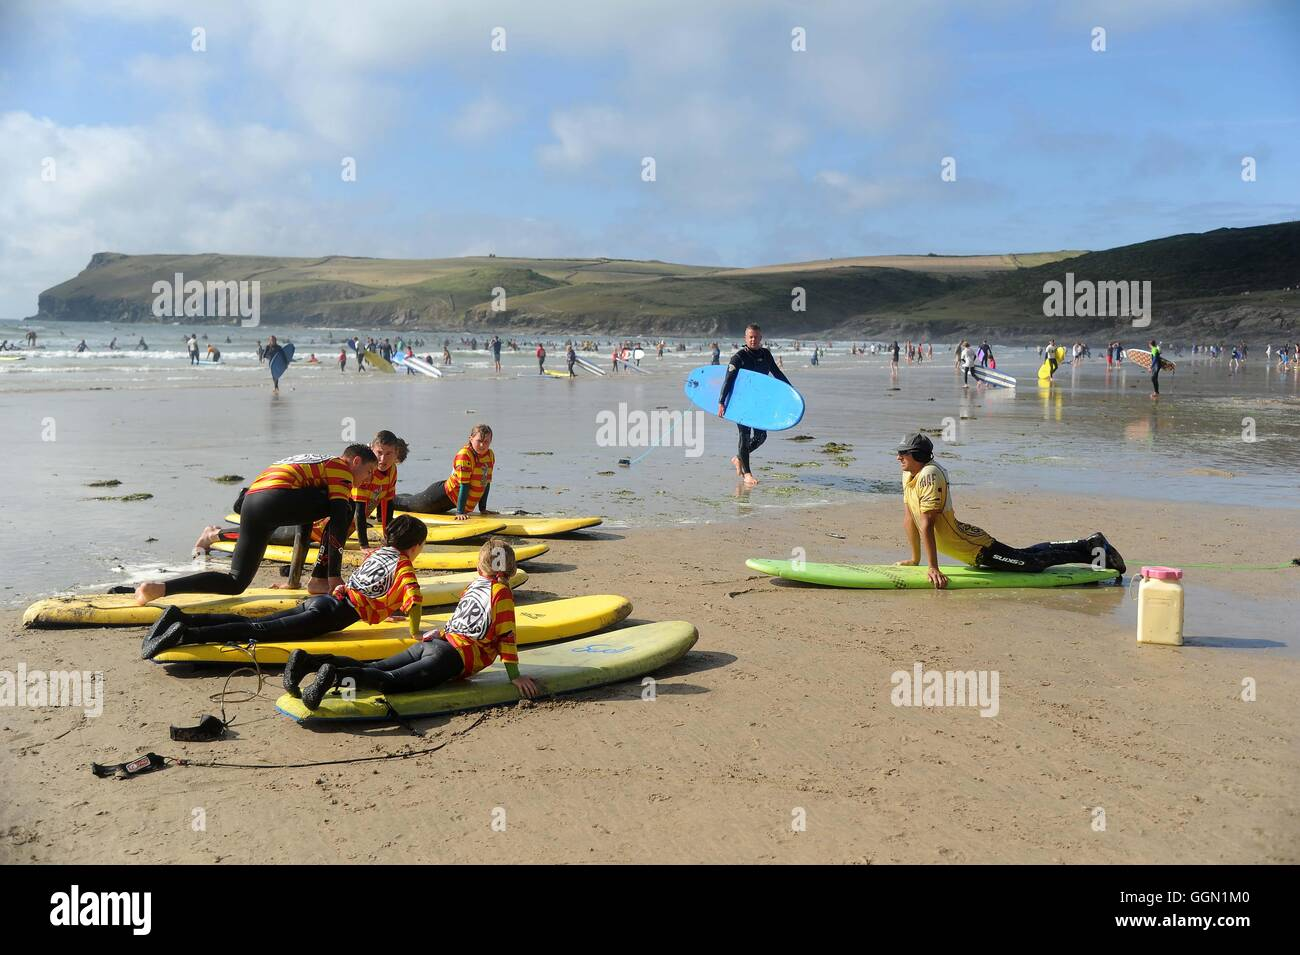 Surfing lesson at Polzeath beach, Cornwall, UK - Stock Image